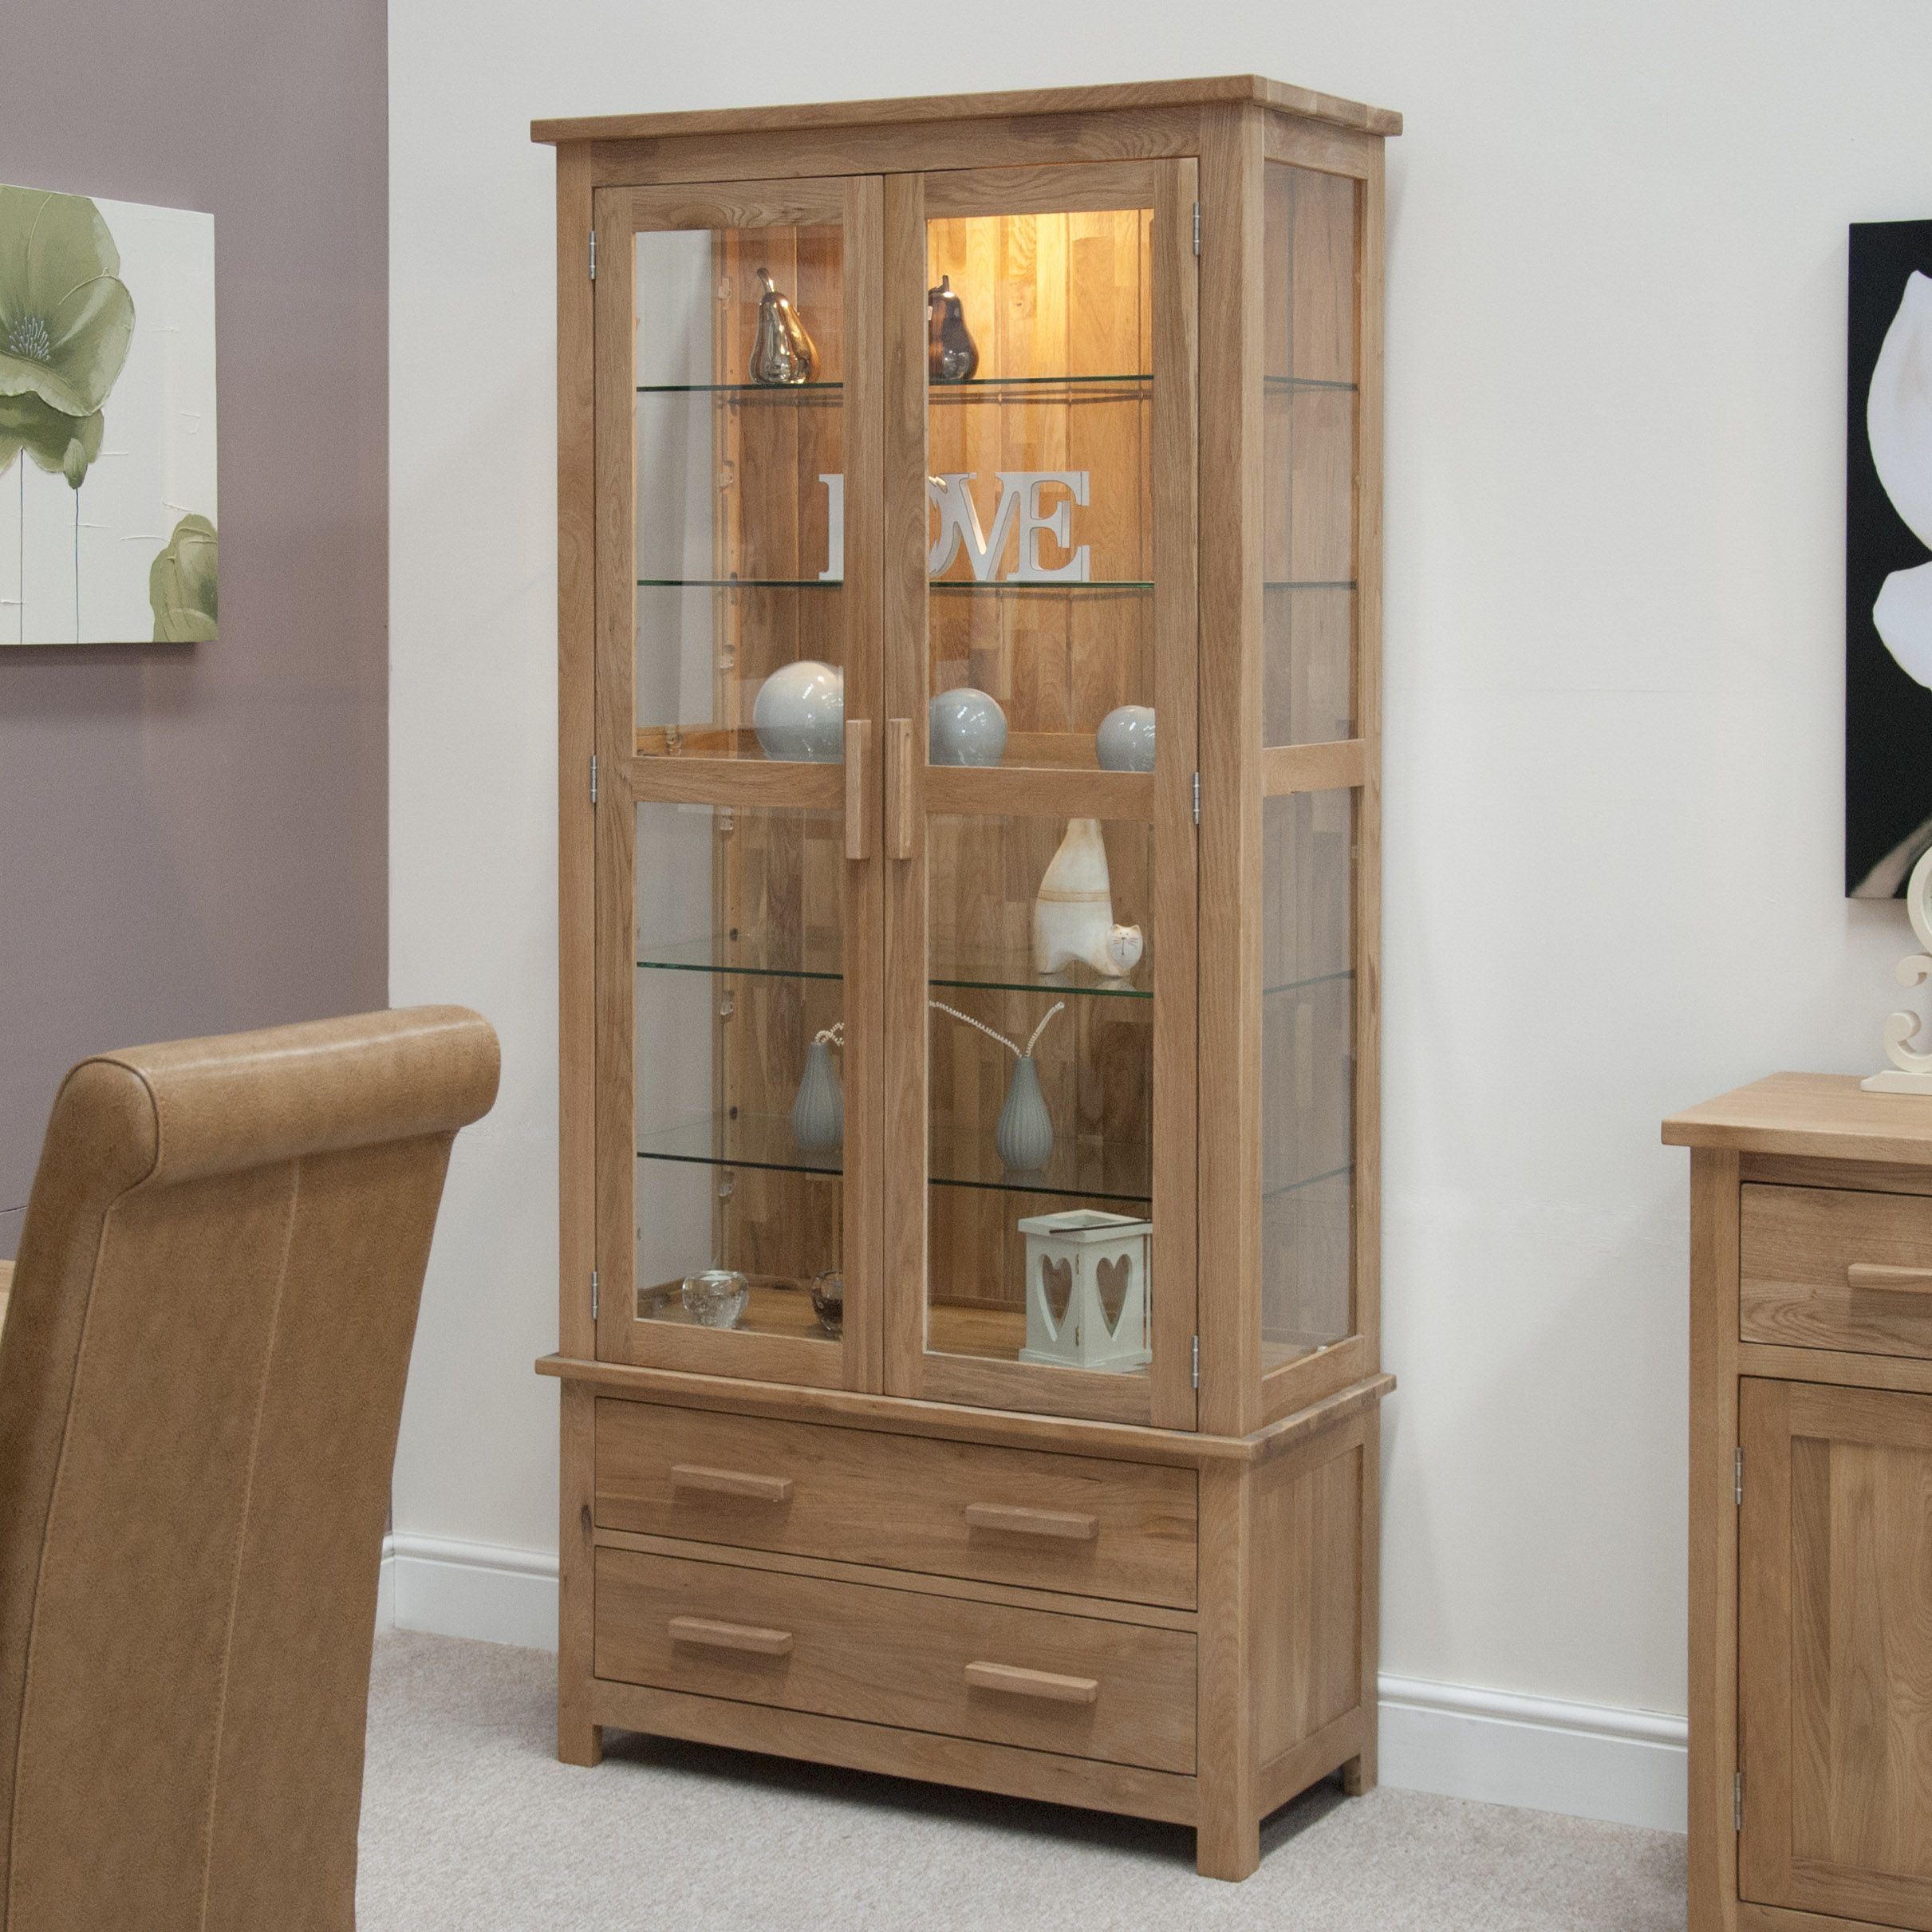 living room cabinets with glass doors. Laminated Wooden Display Cabinet Come With Clear Glass Door Or Side  Together 2 Storage Drawer